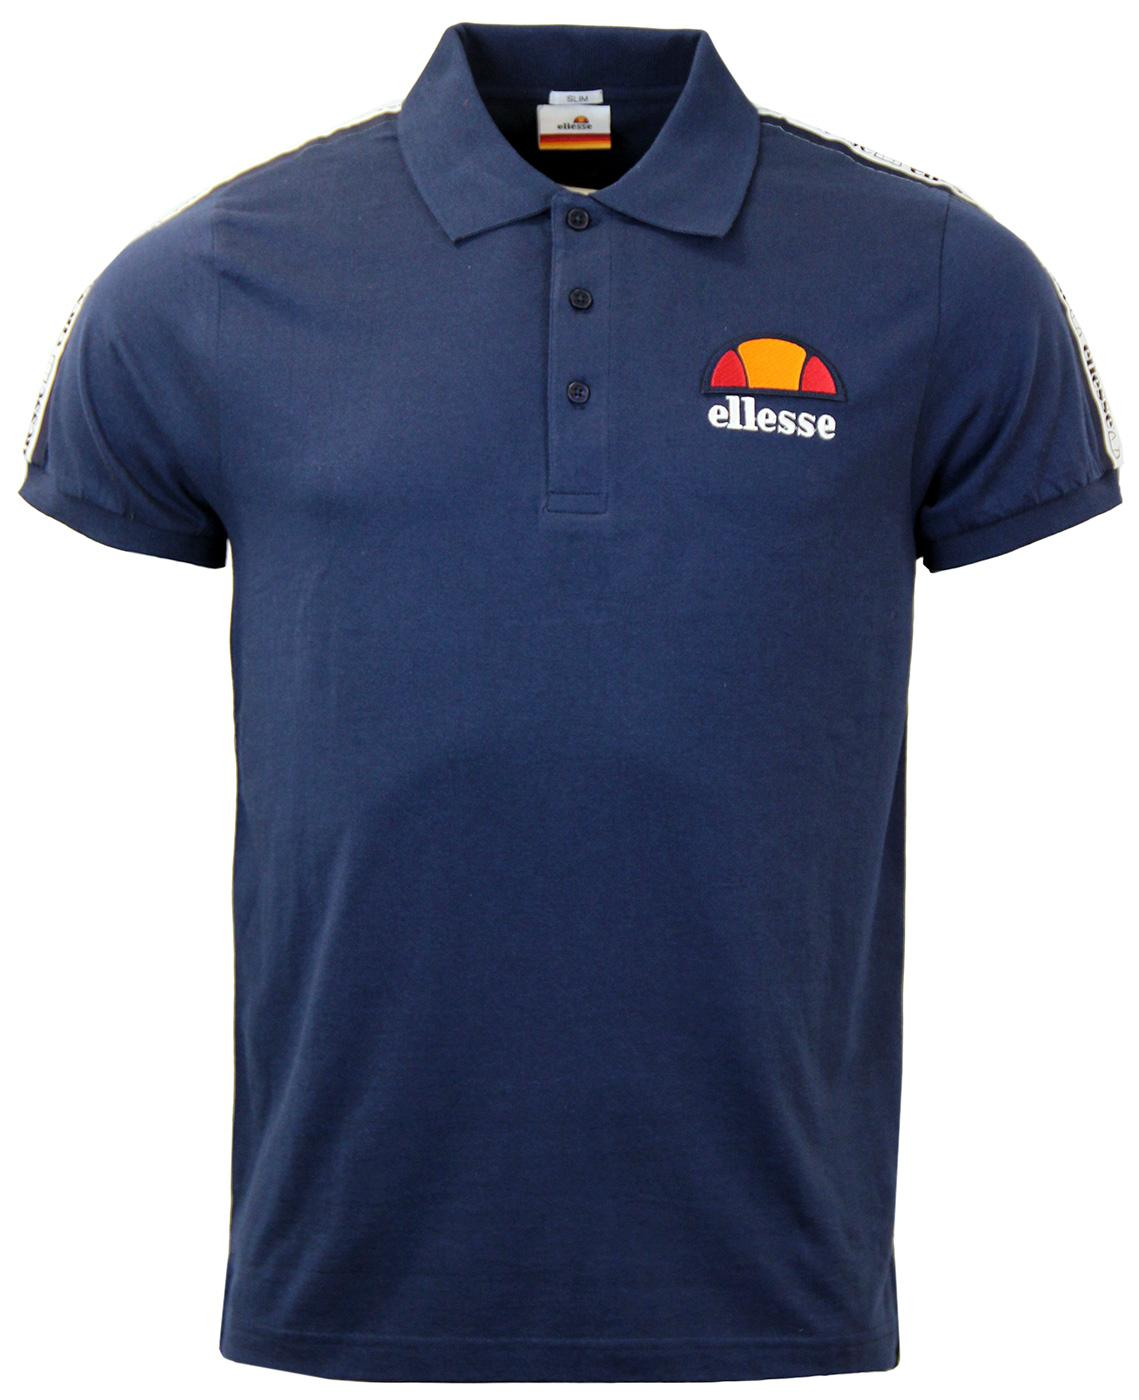 Mangart ELLESSE Retro 80s Taped Sleeves Polo